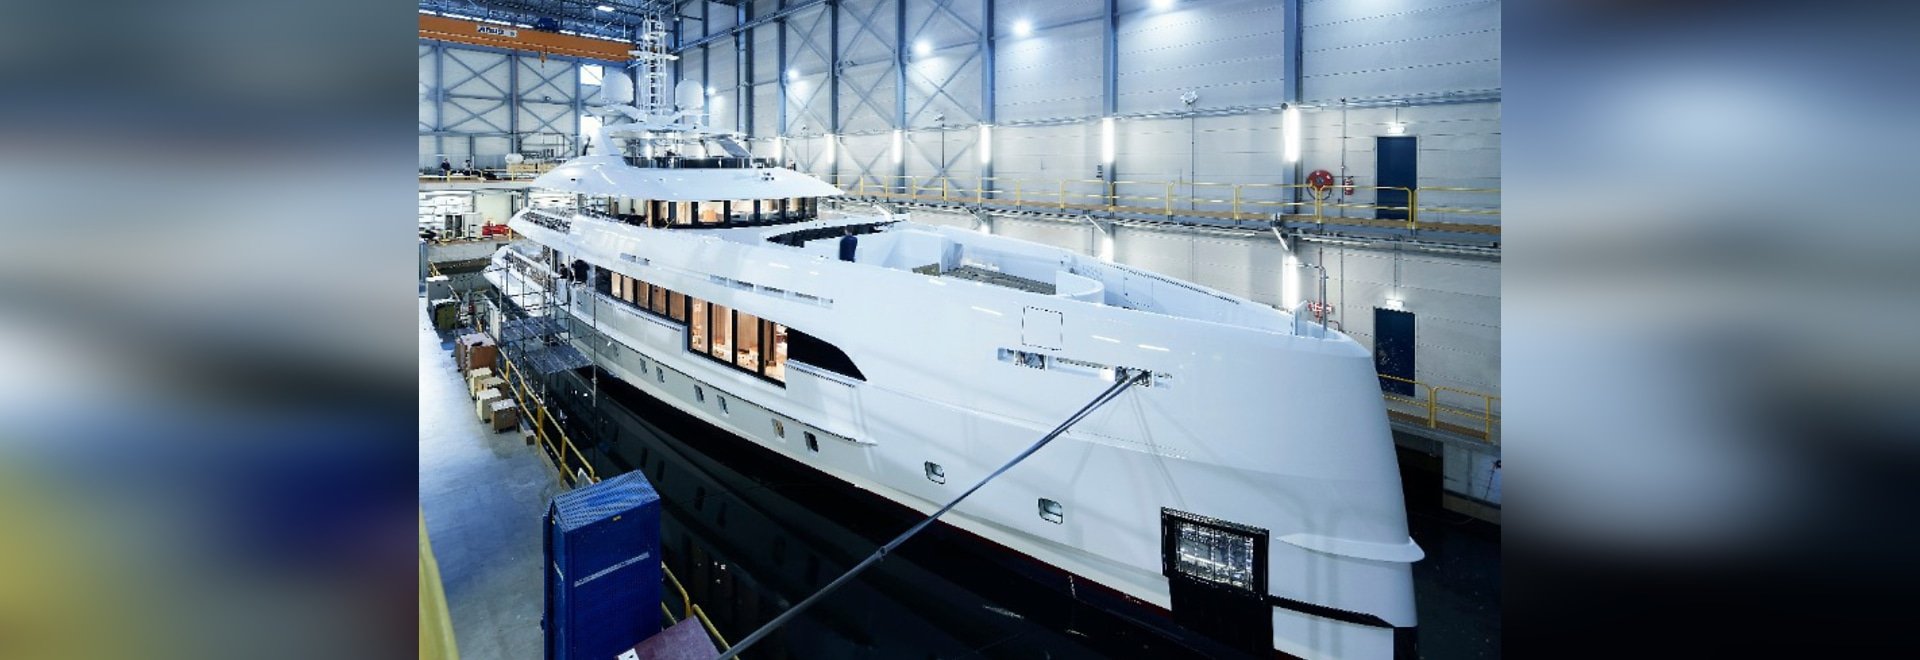 Heesen launches second hybrid yacht